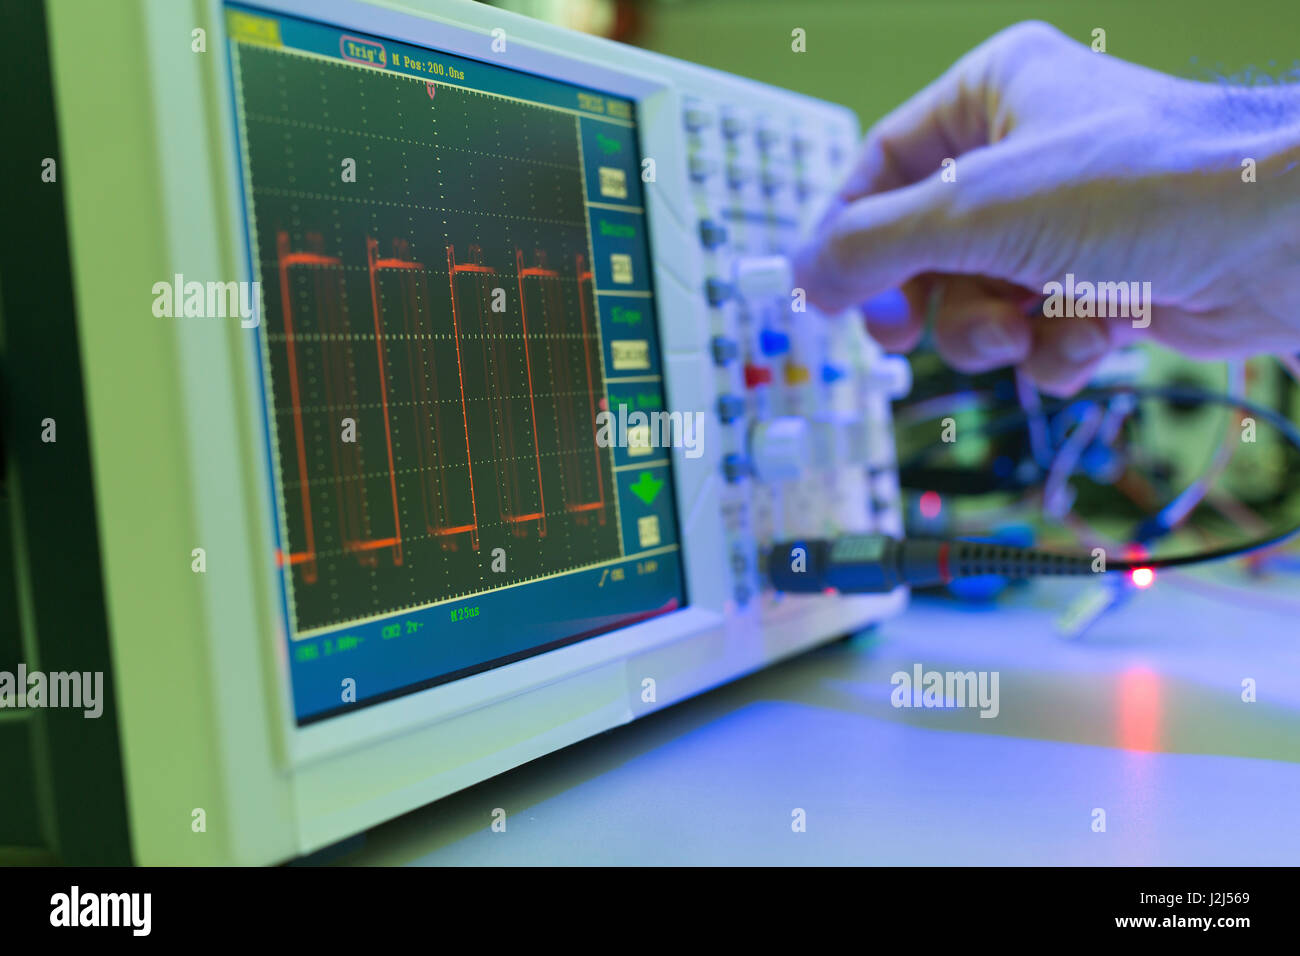 Control panel on specialist measuring instrument in the laboratory. - Stock Image